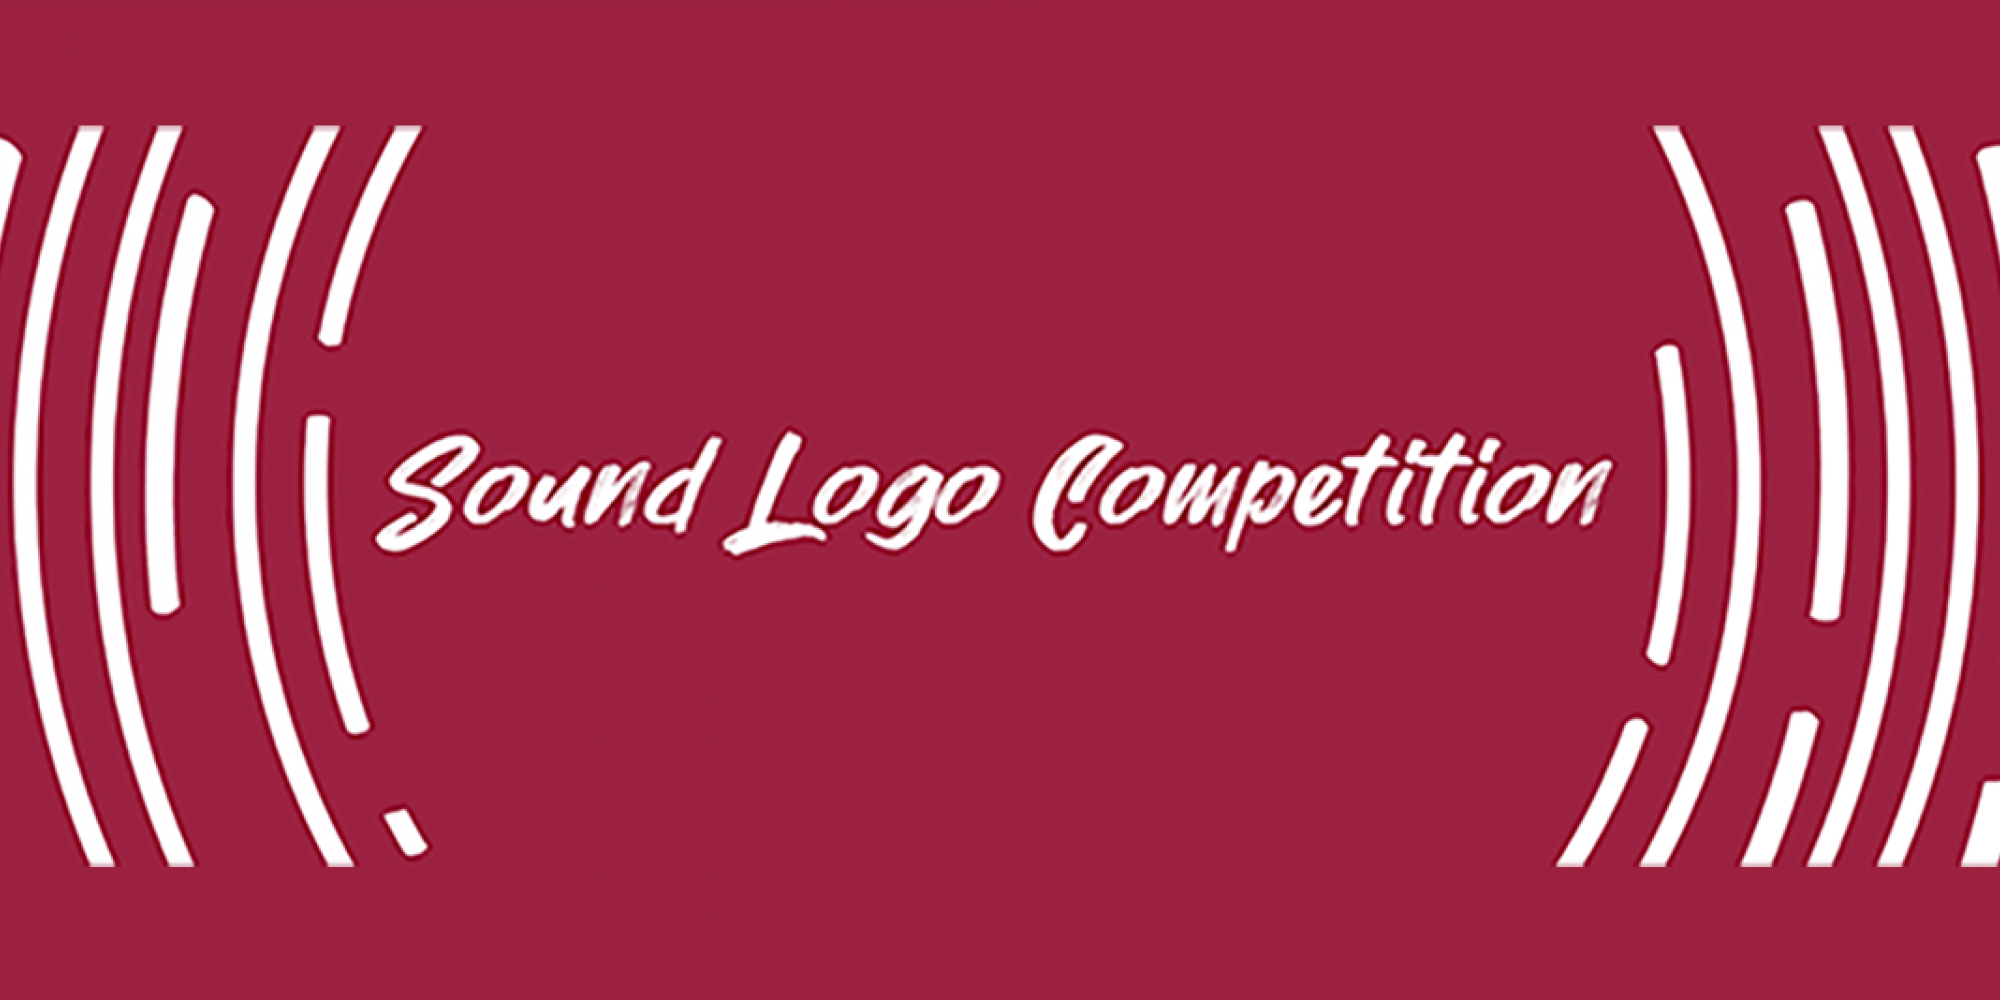 Sound Logo Competition